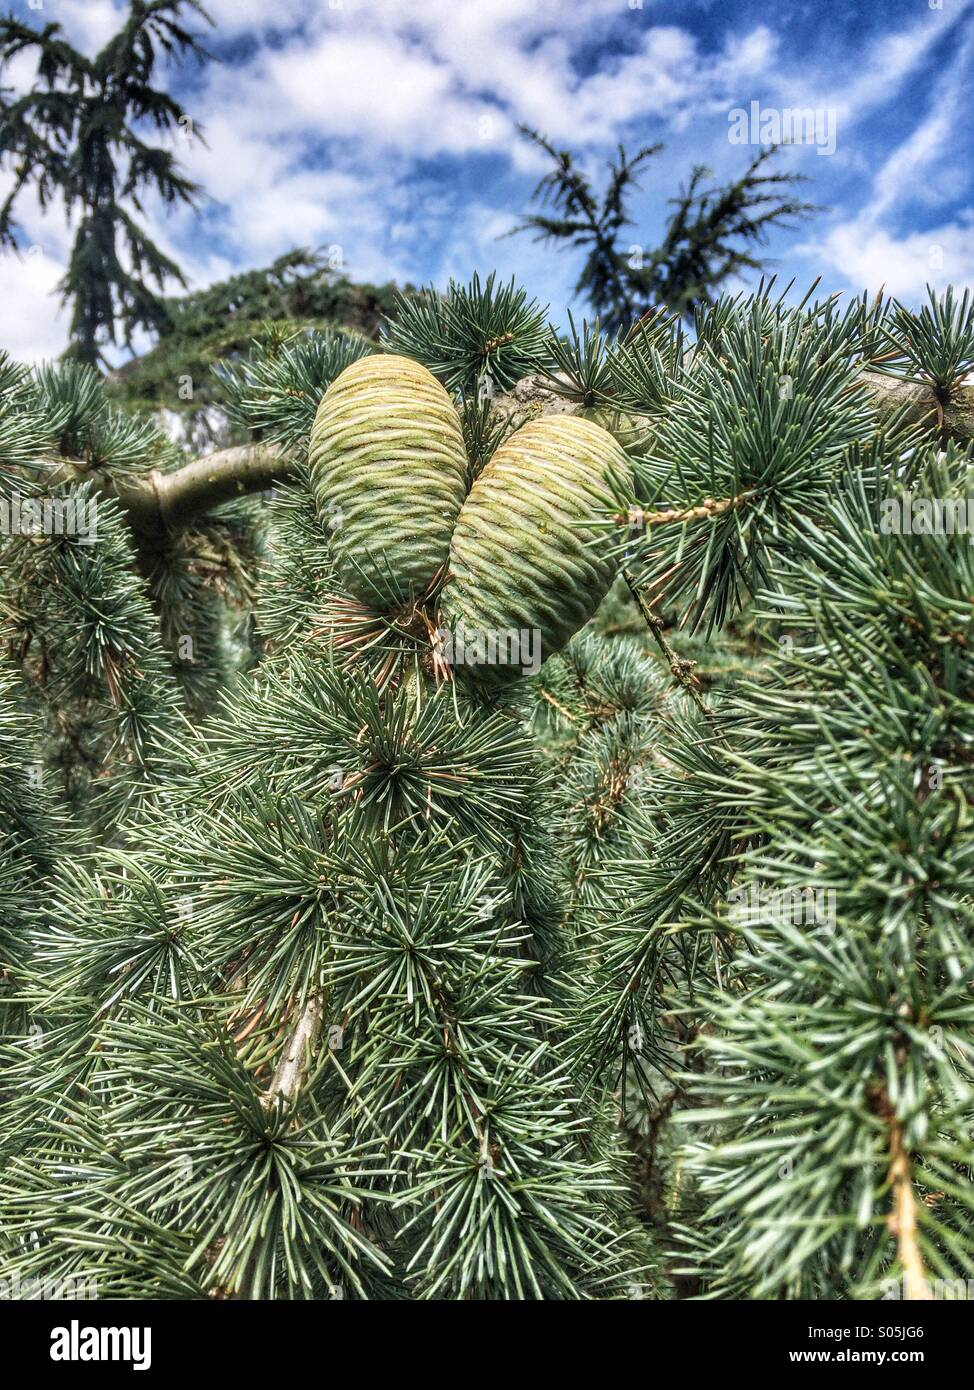 Immature pine cones in a tree. - Stock Image